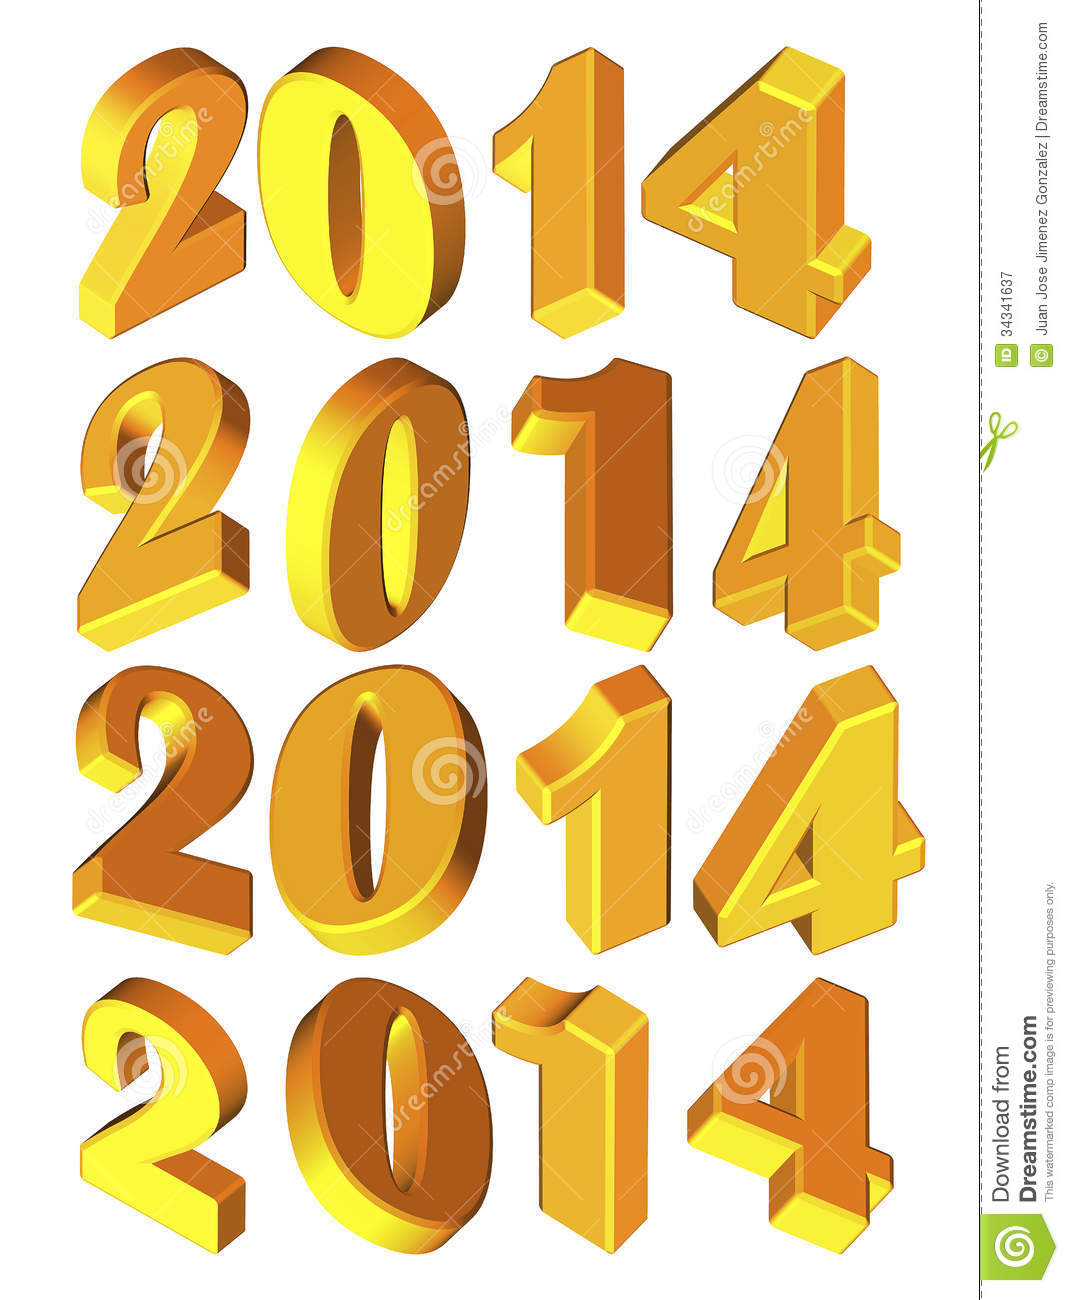 Happy New Year Stock Vectors Clipart and Illustrations